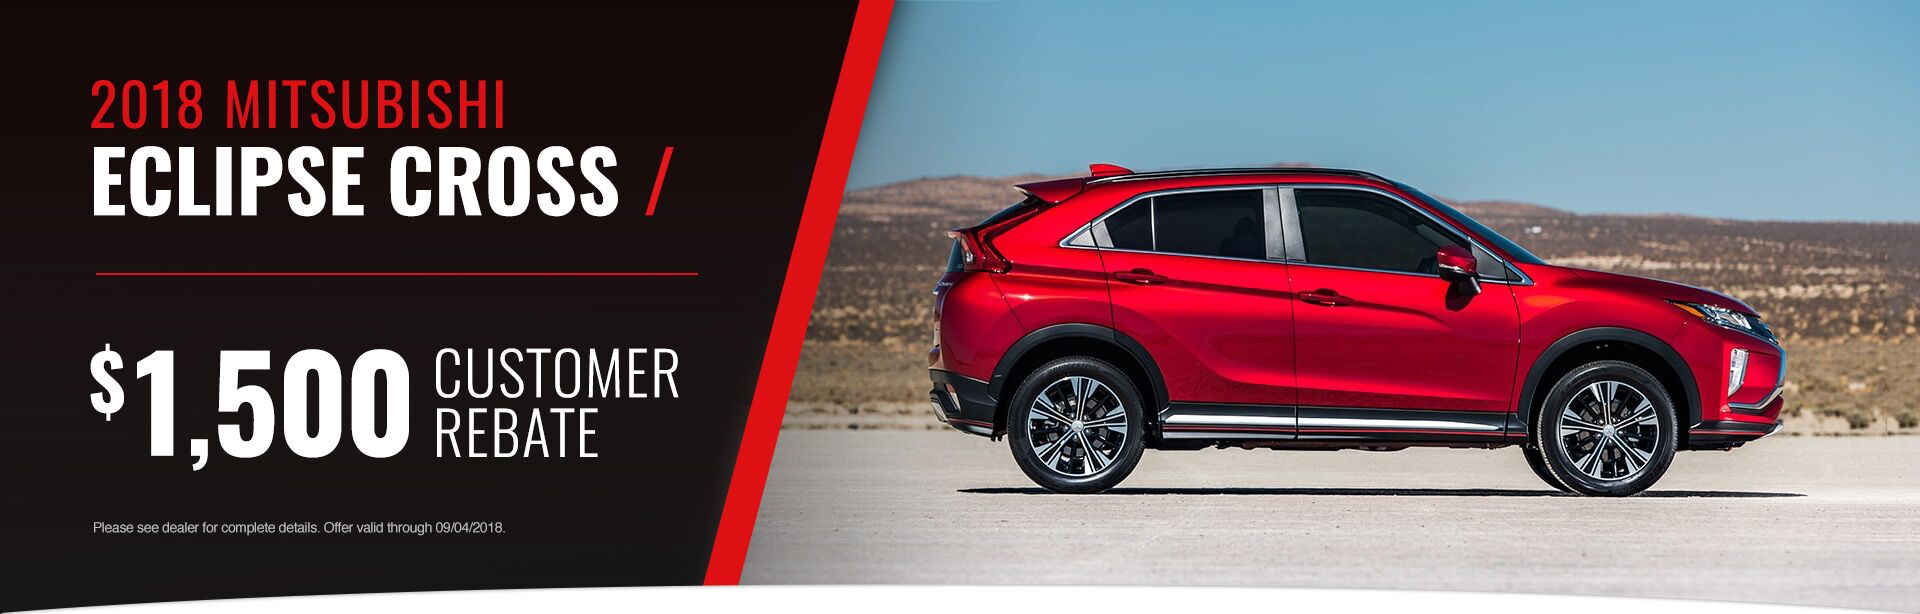 2018 Eclipse Cross August Offer